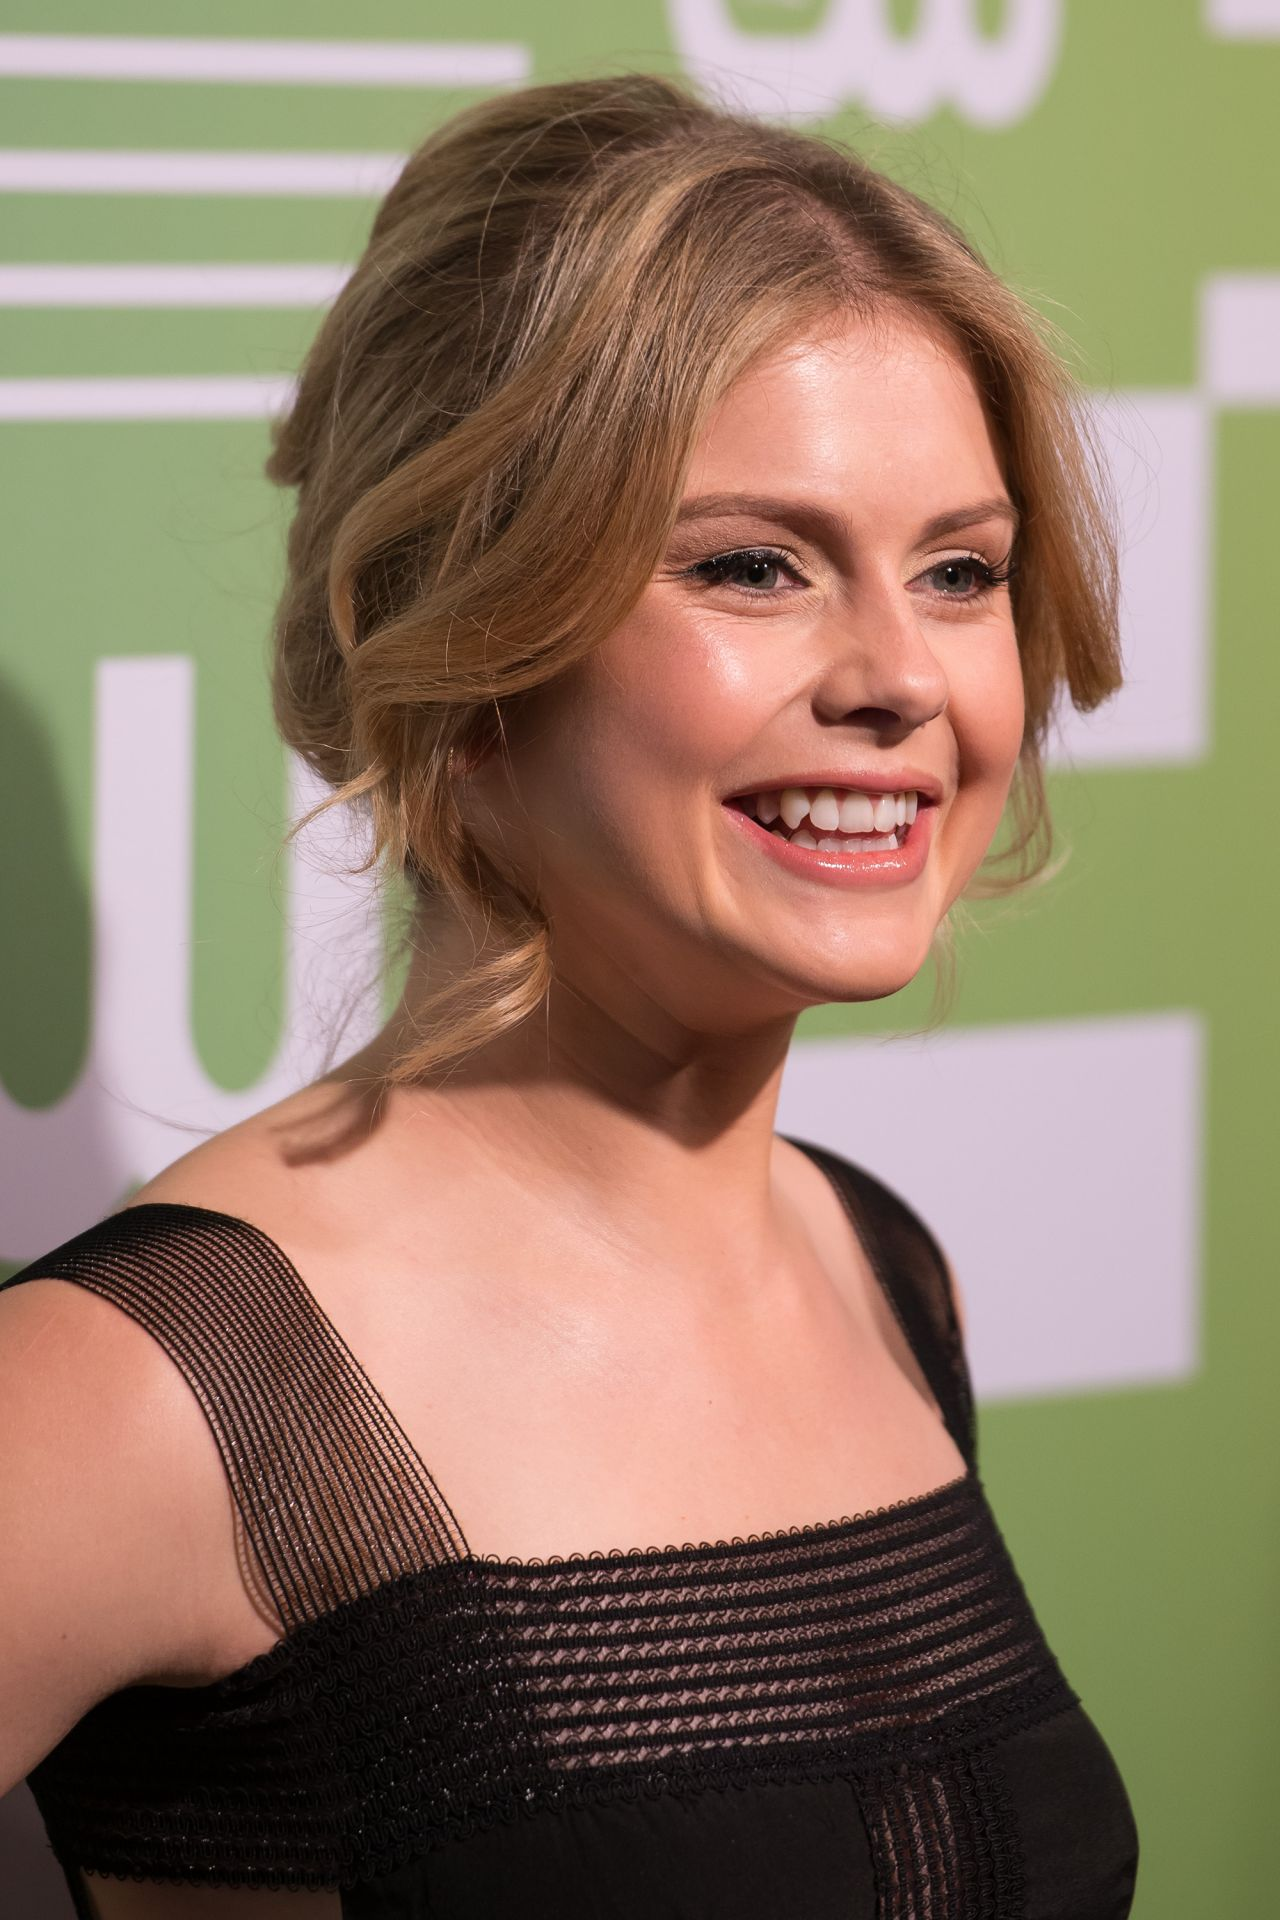 Rose McIver nudes (87 photos) Hacked, Snapchat, butt